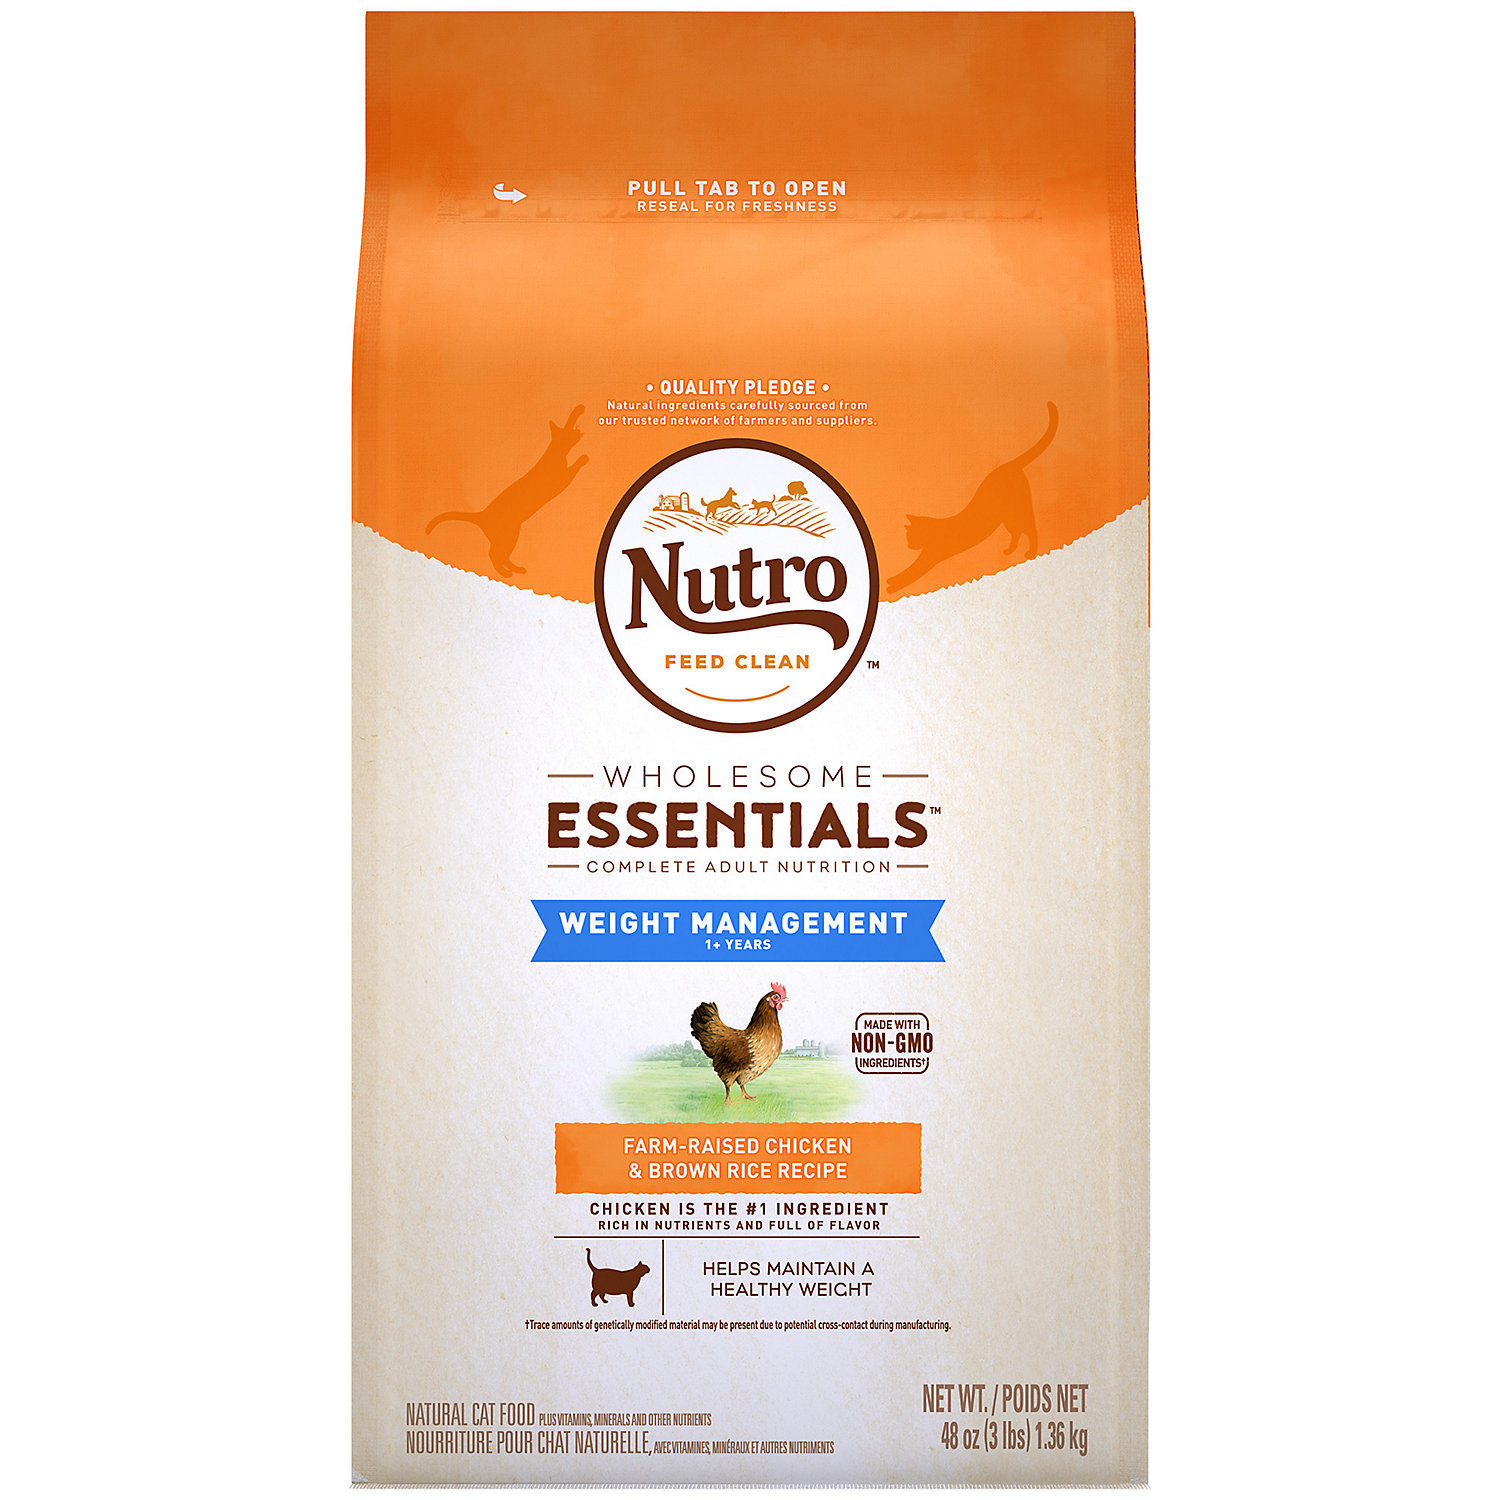 Nutro wholesome essentials weight management 1+ years farm-raised chicken and brown rice recipe for cats 3 pounds (4/20)